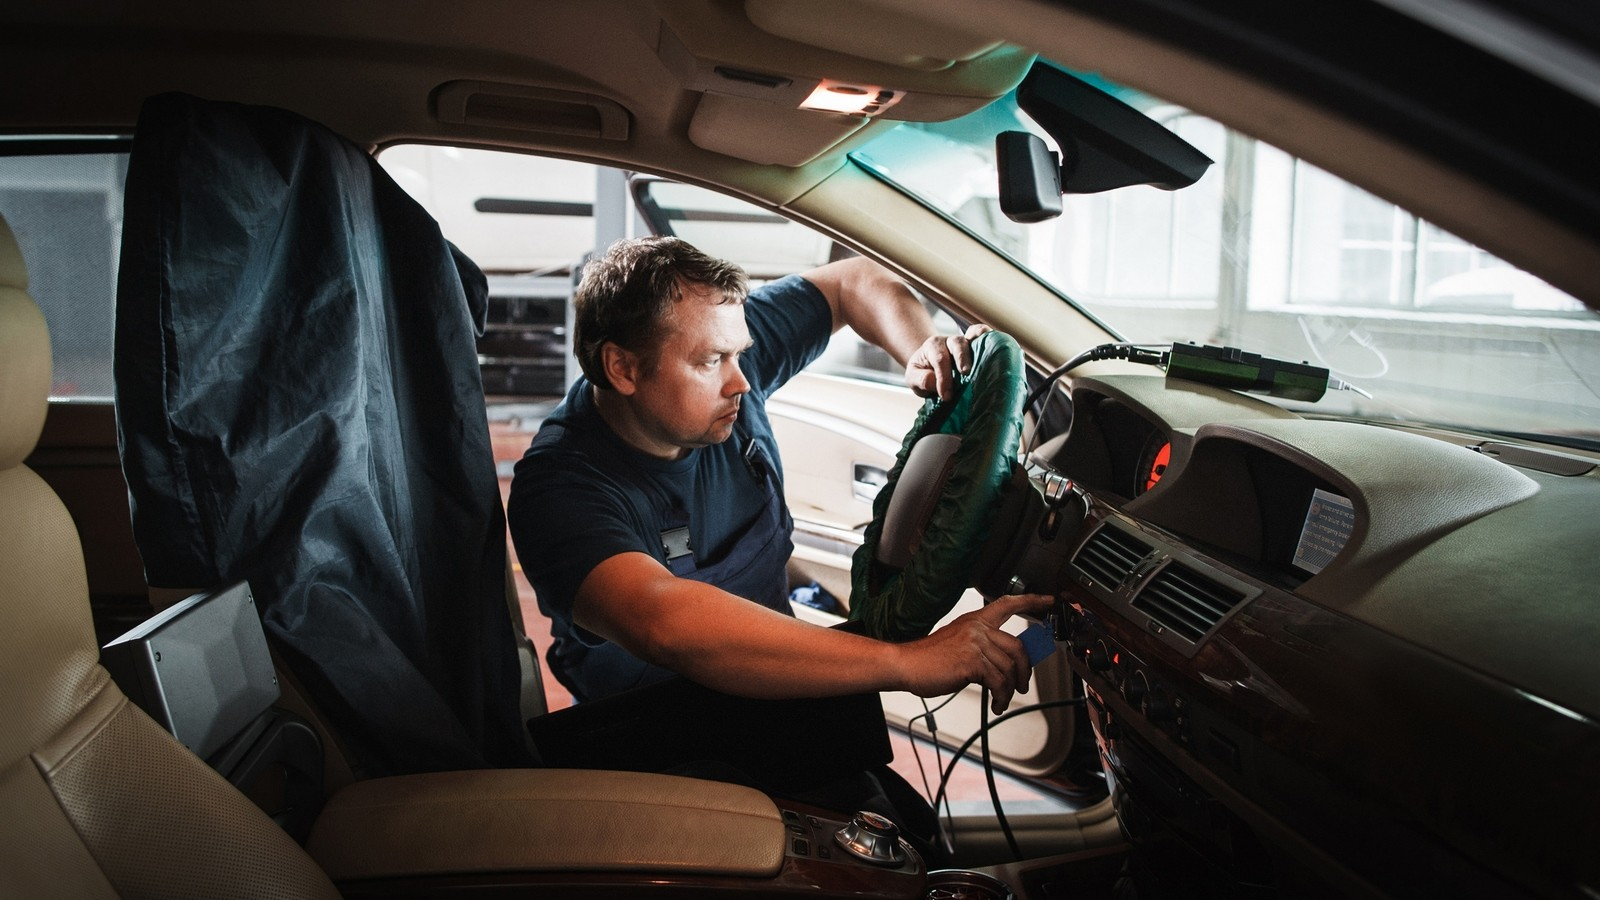 On-board computer tuning by serviceman at garage